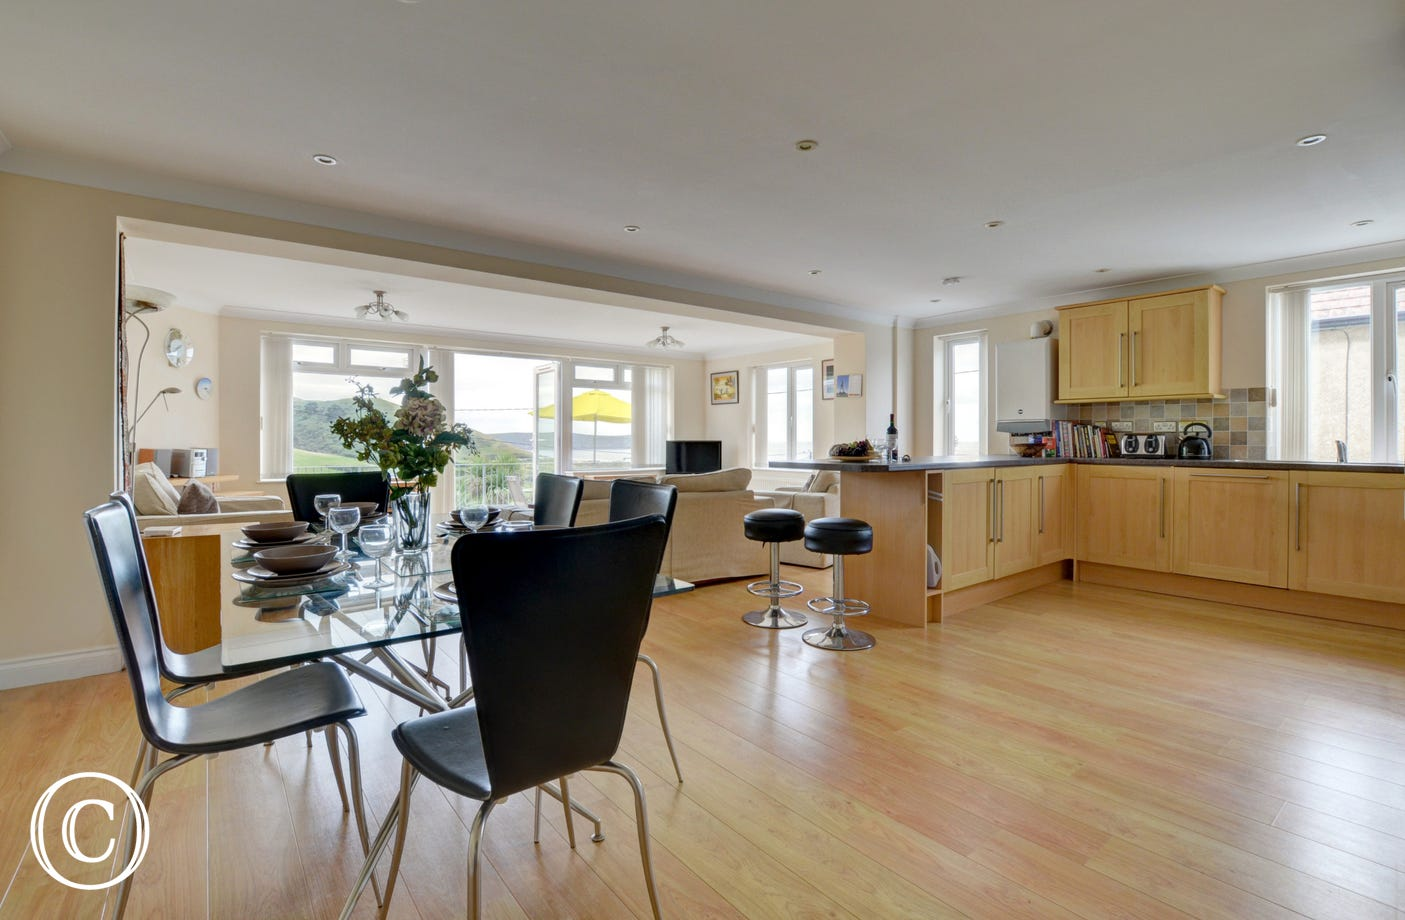 Very spacious open plan living room with stylish kitchen and dining areas complemented by wooden flooring